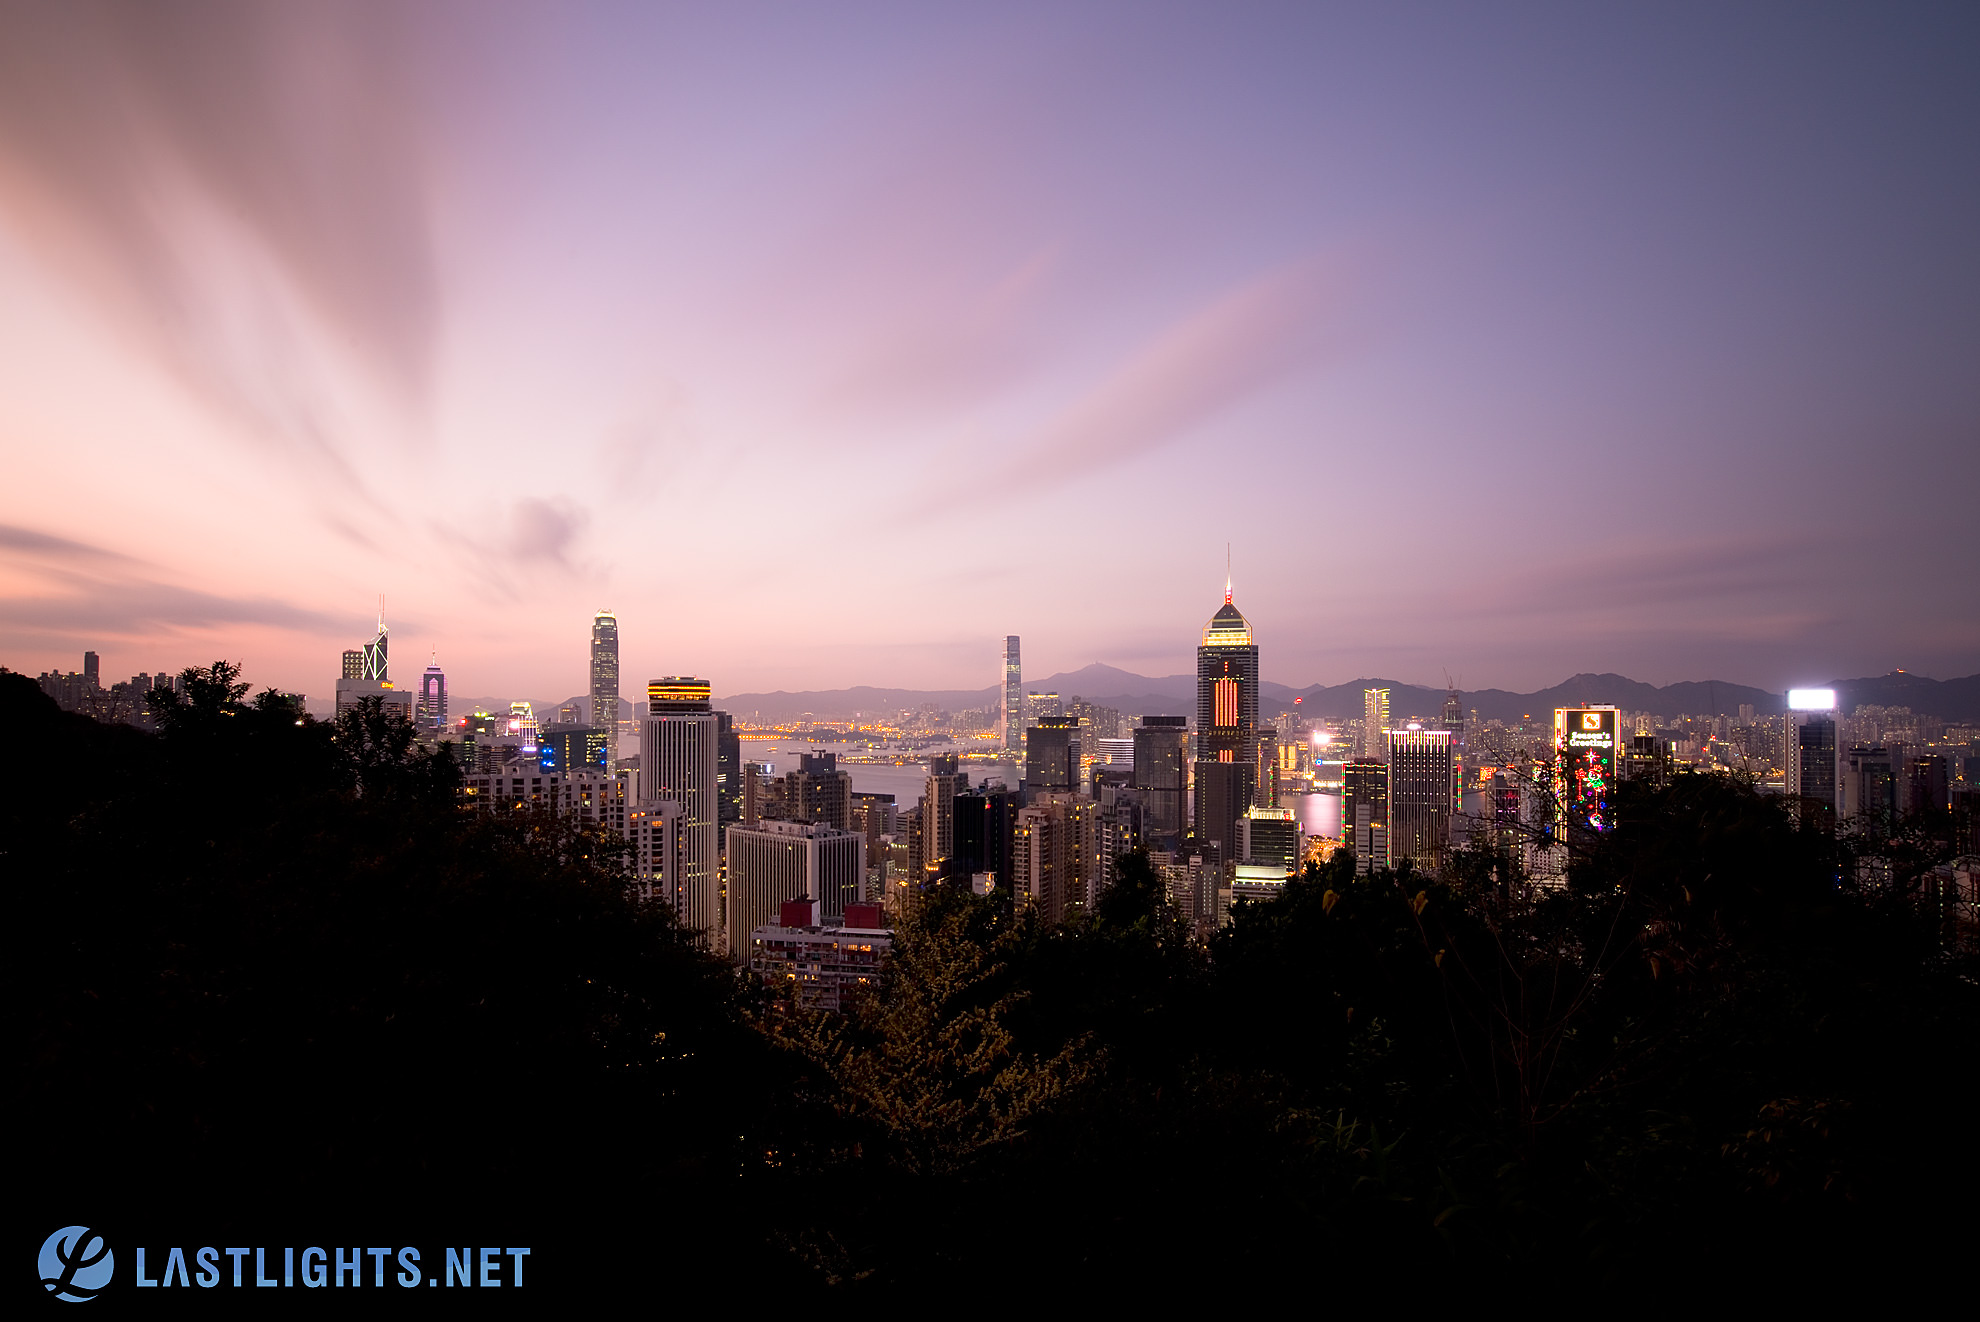 Stubbs Road Lookout, Hong Kong